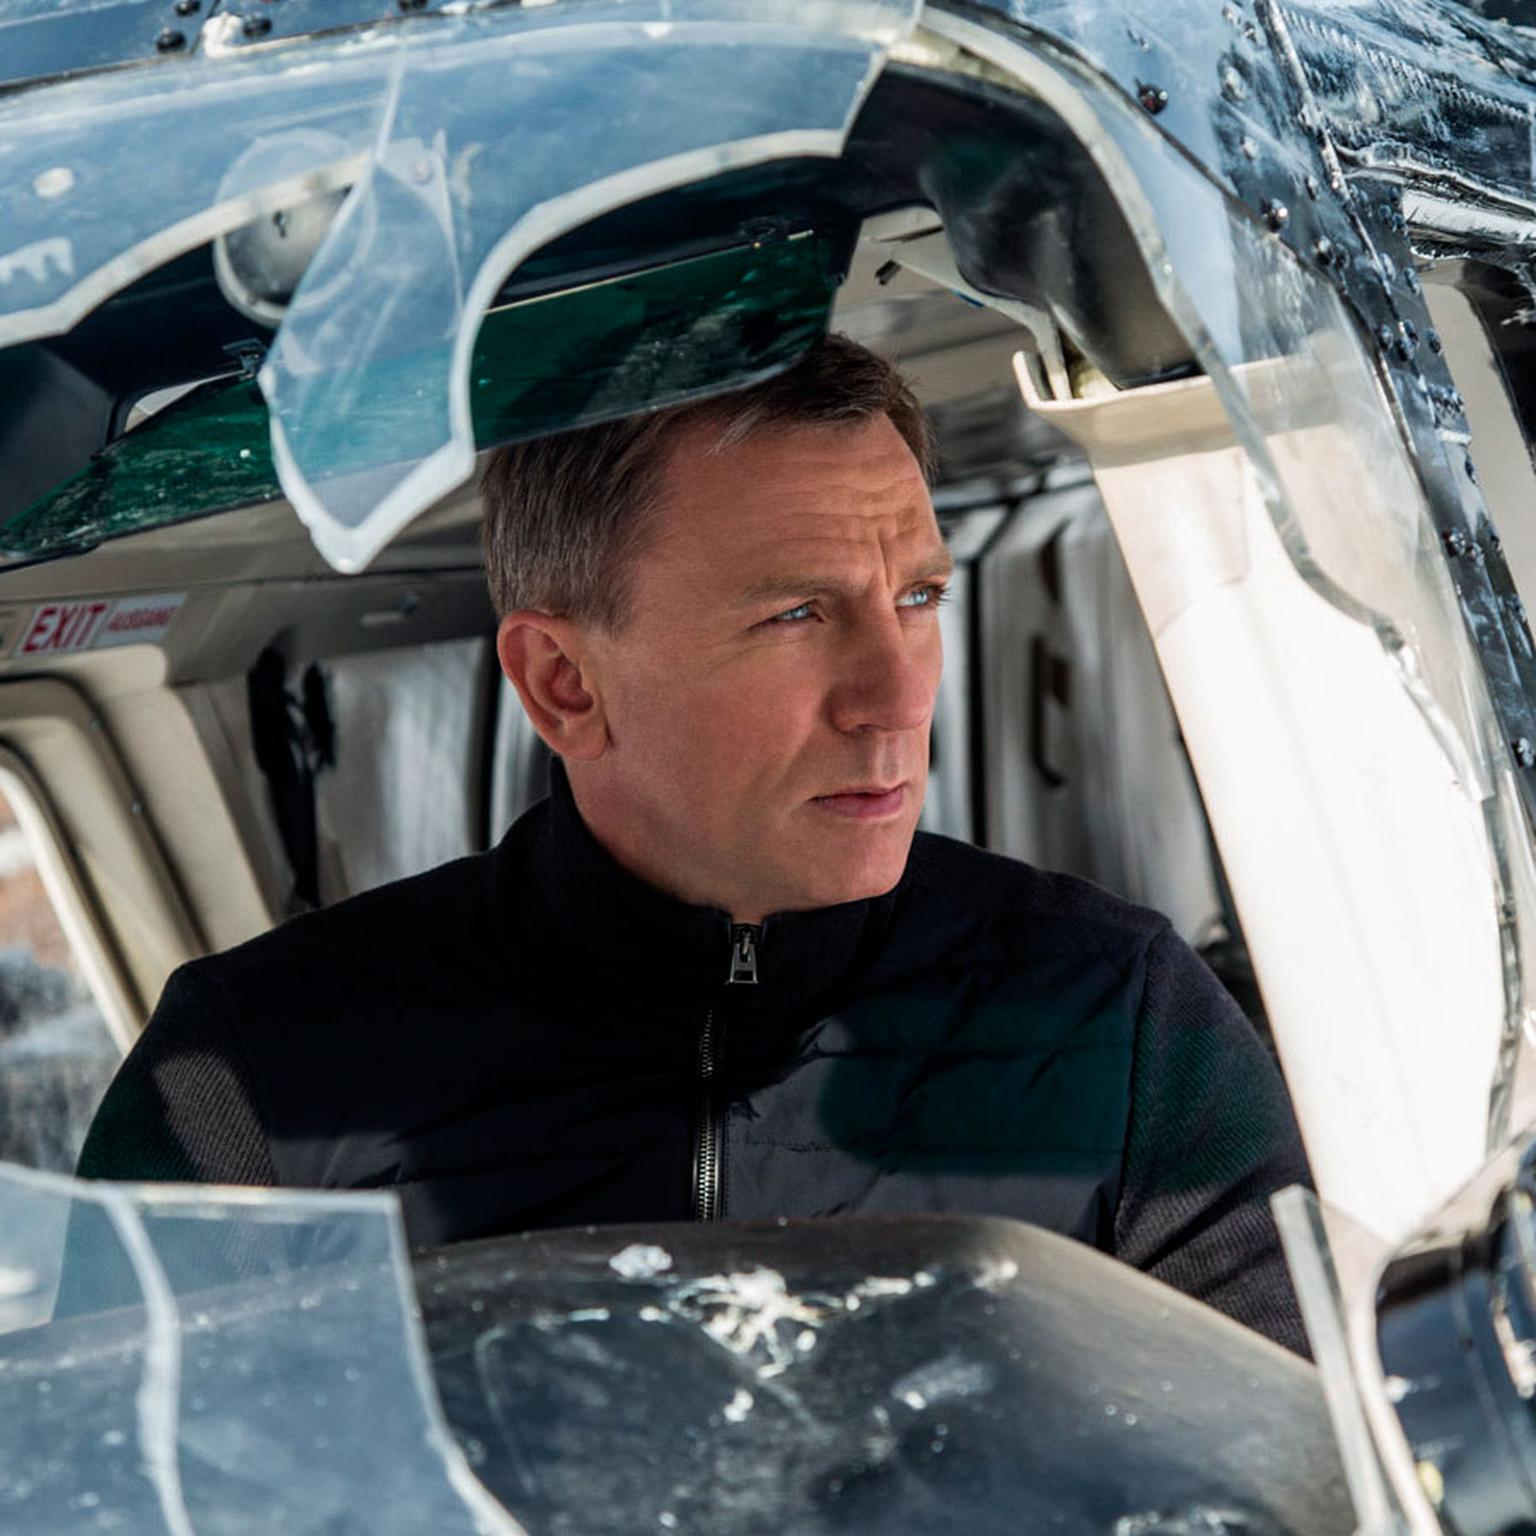 Daniel Craig as James Bond in Spectre 2015